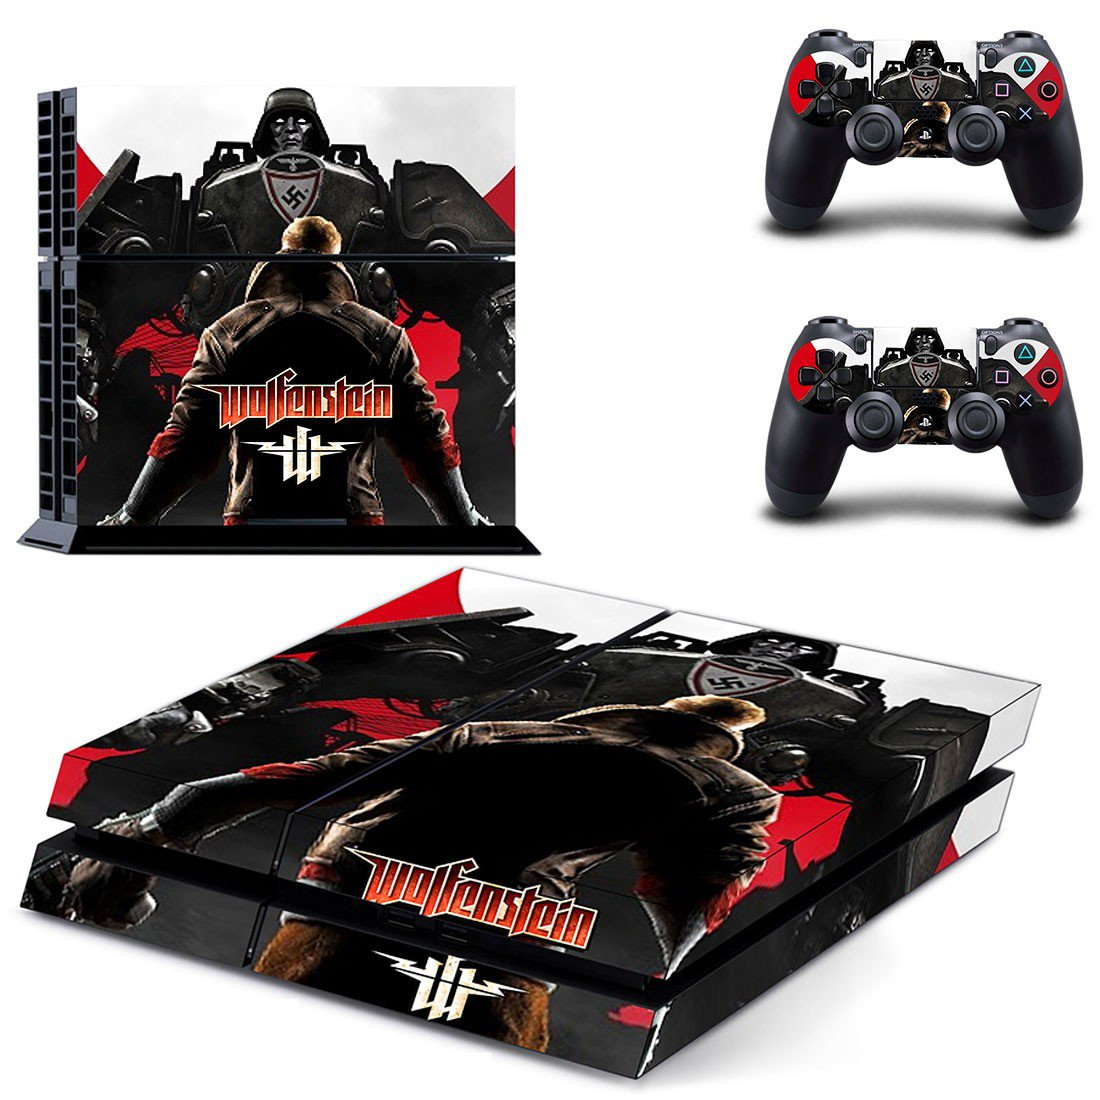 Wolfenstein decal skin sticker for PS4 console and controllers